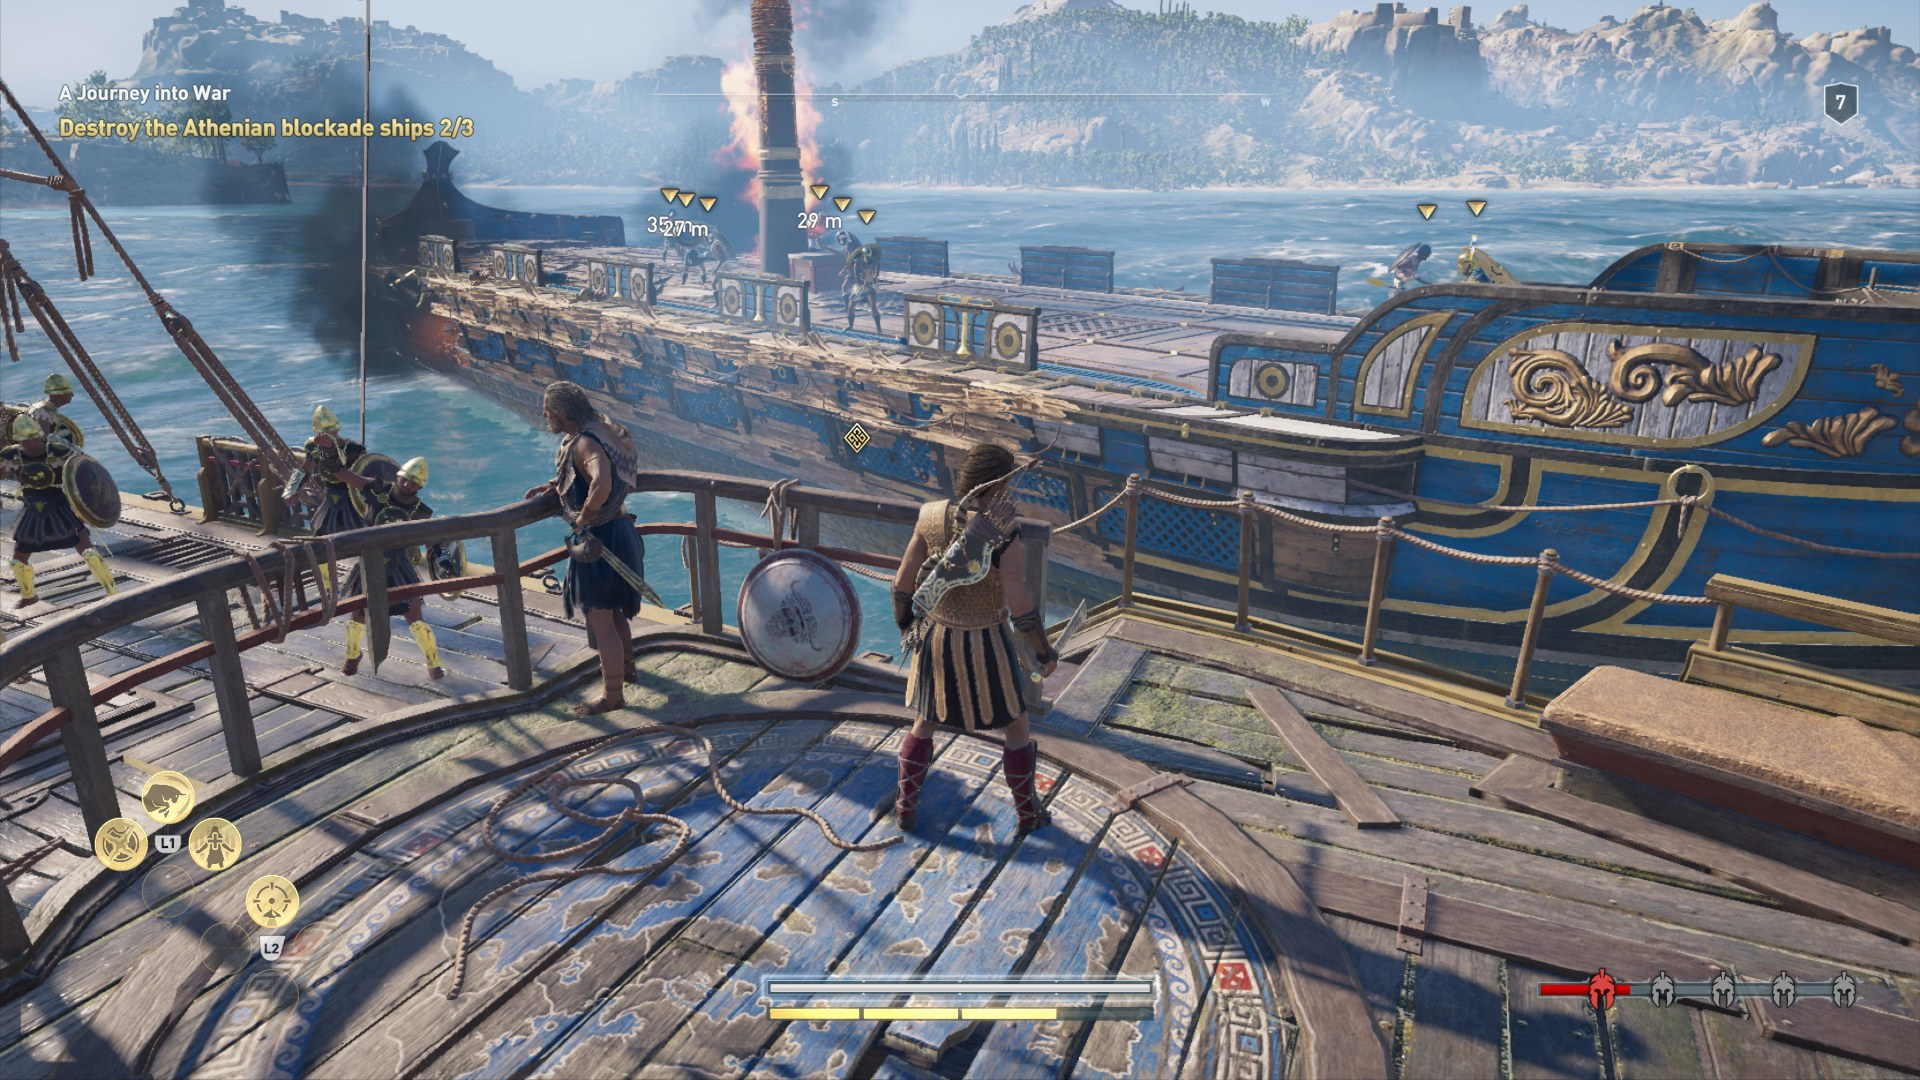 1618057304 309 70 Assassin's Creed Odyssey Walkthrough and Guides